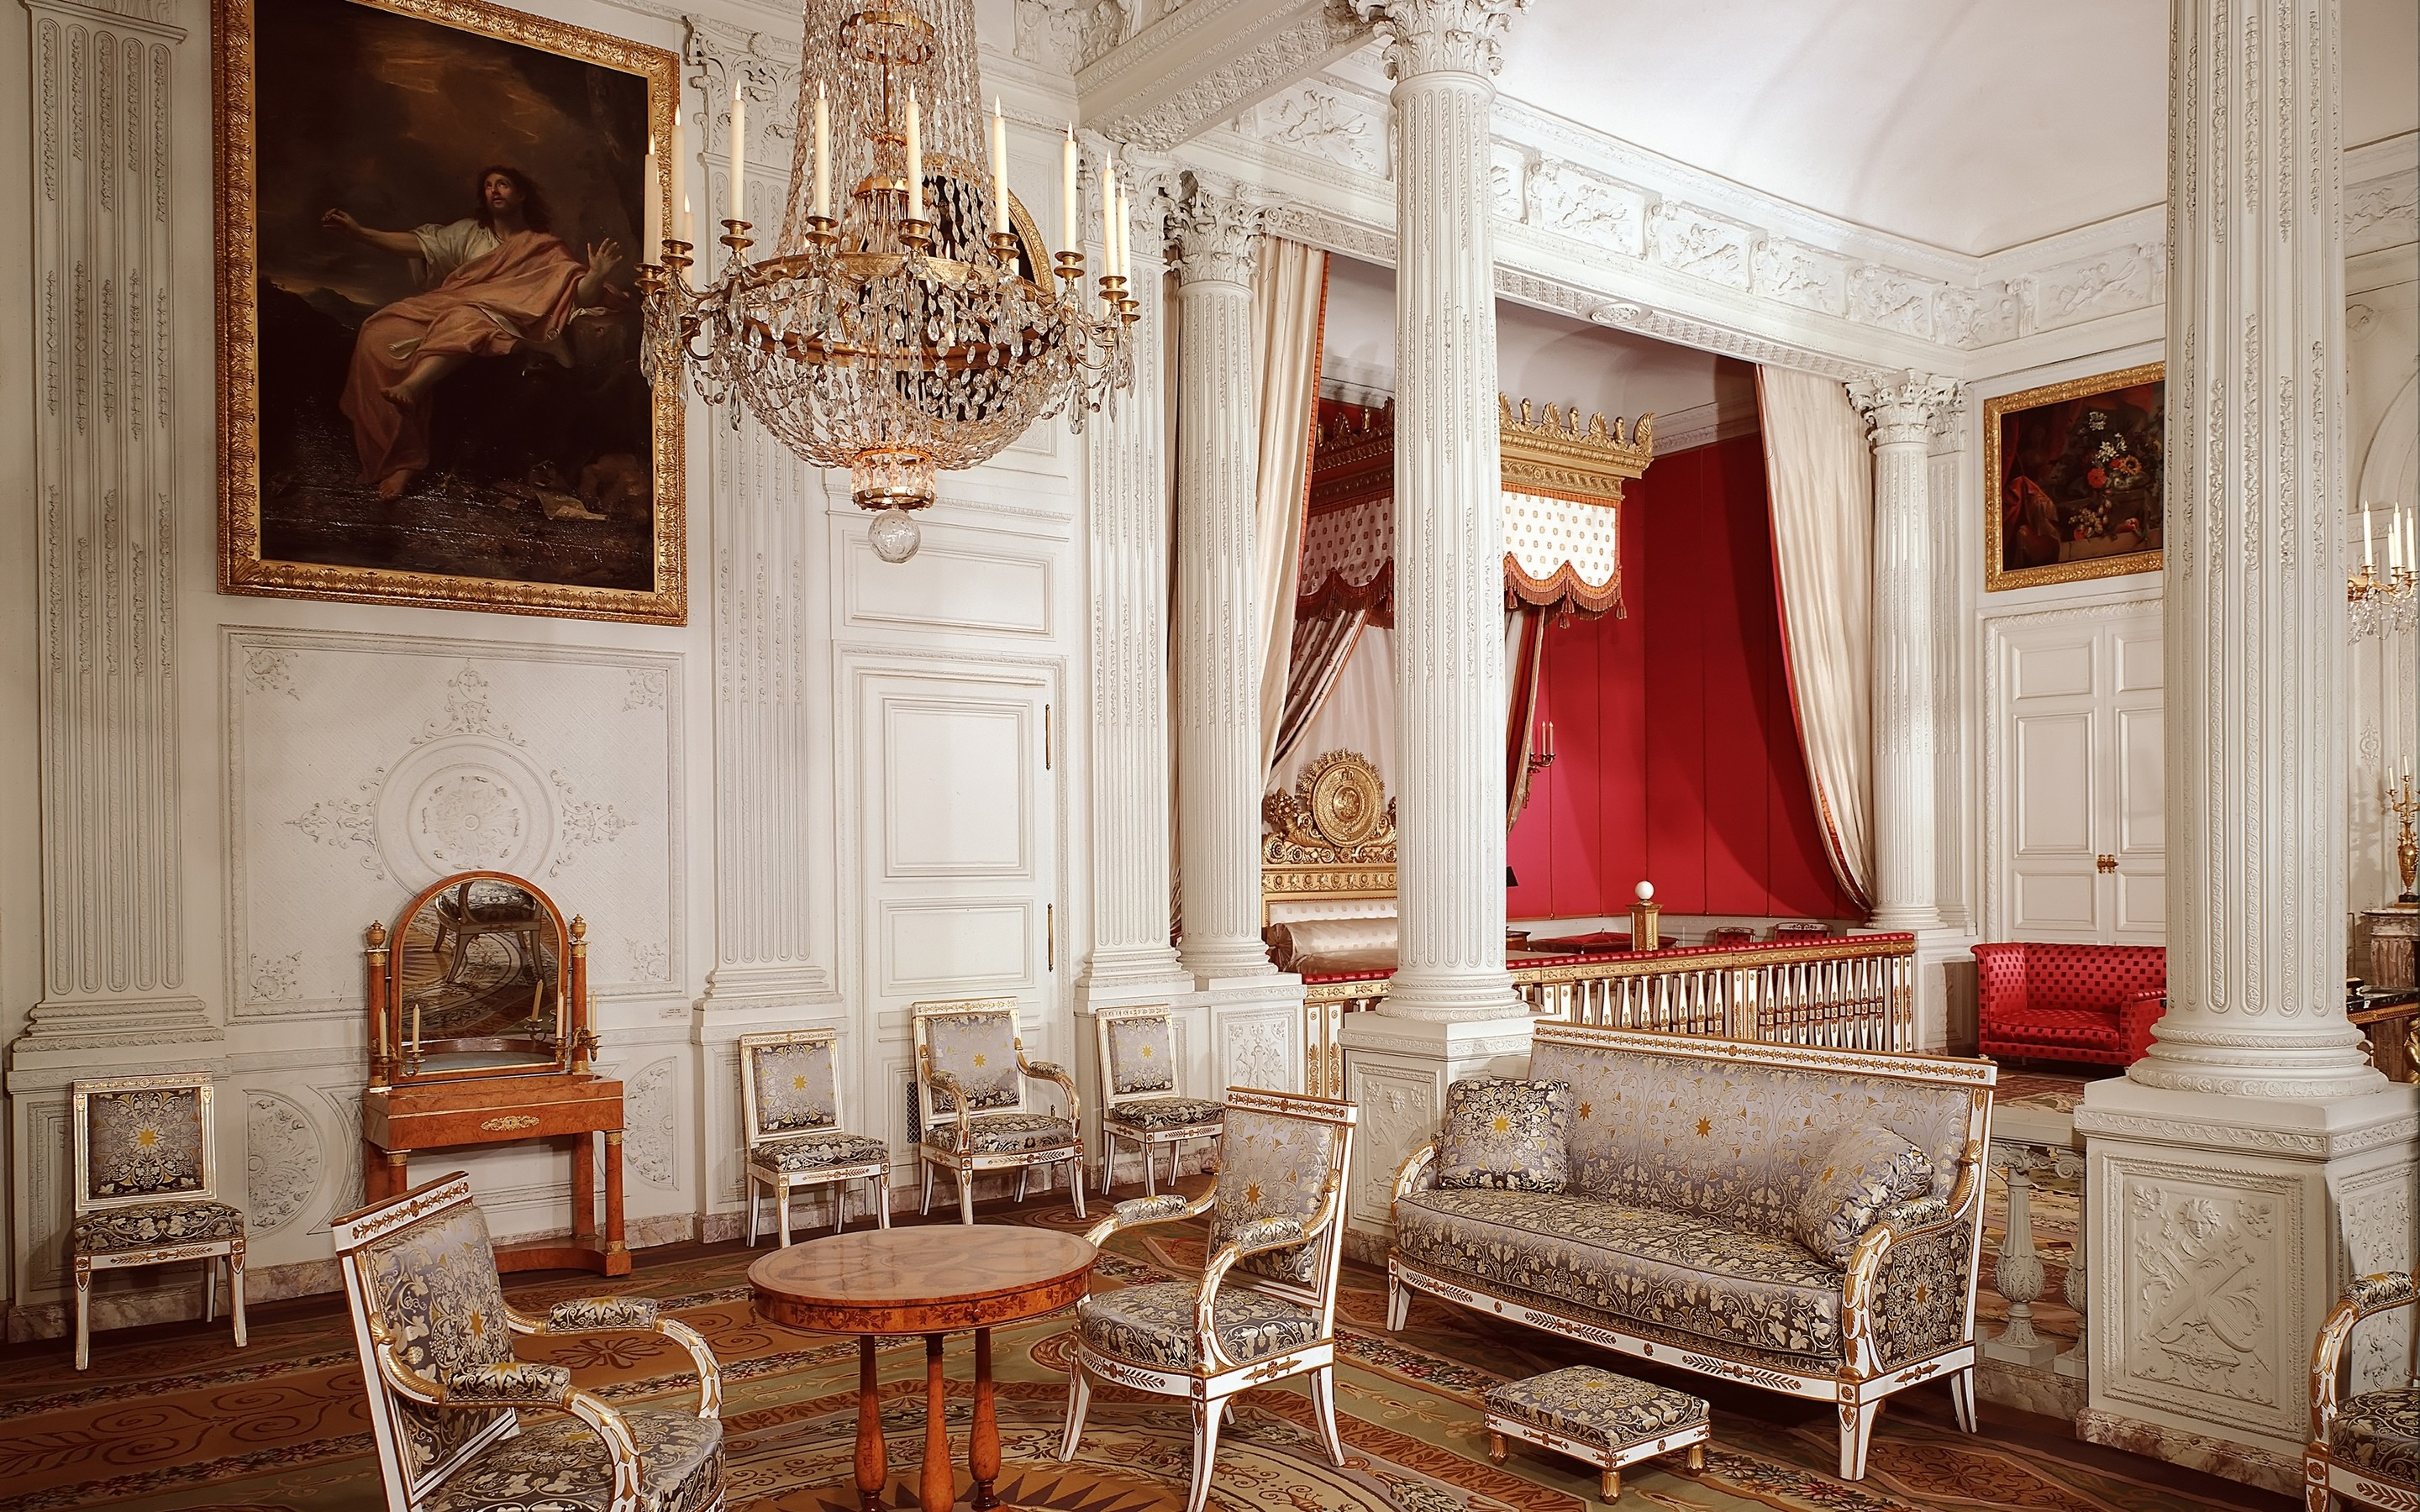 Interieur Wallpaper Versailles Palace Interior Wallpaper Allwallpaper In 5700 Pc En